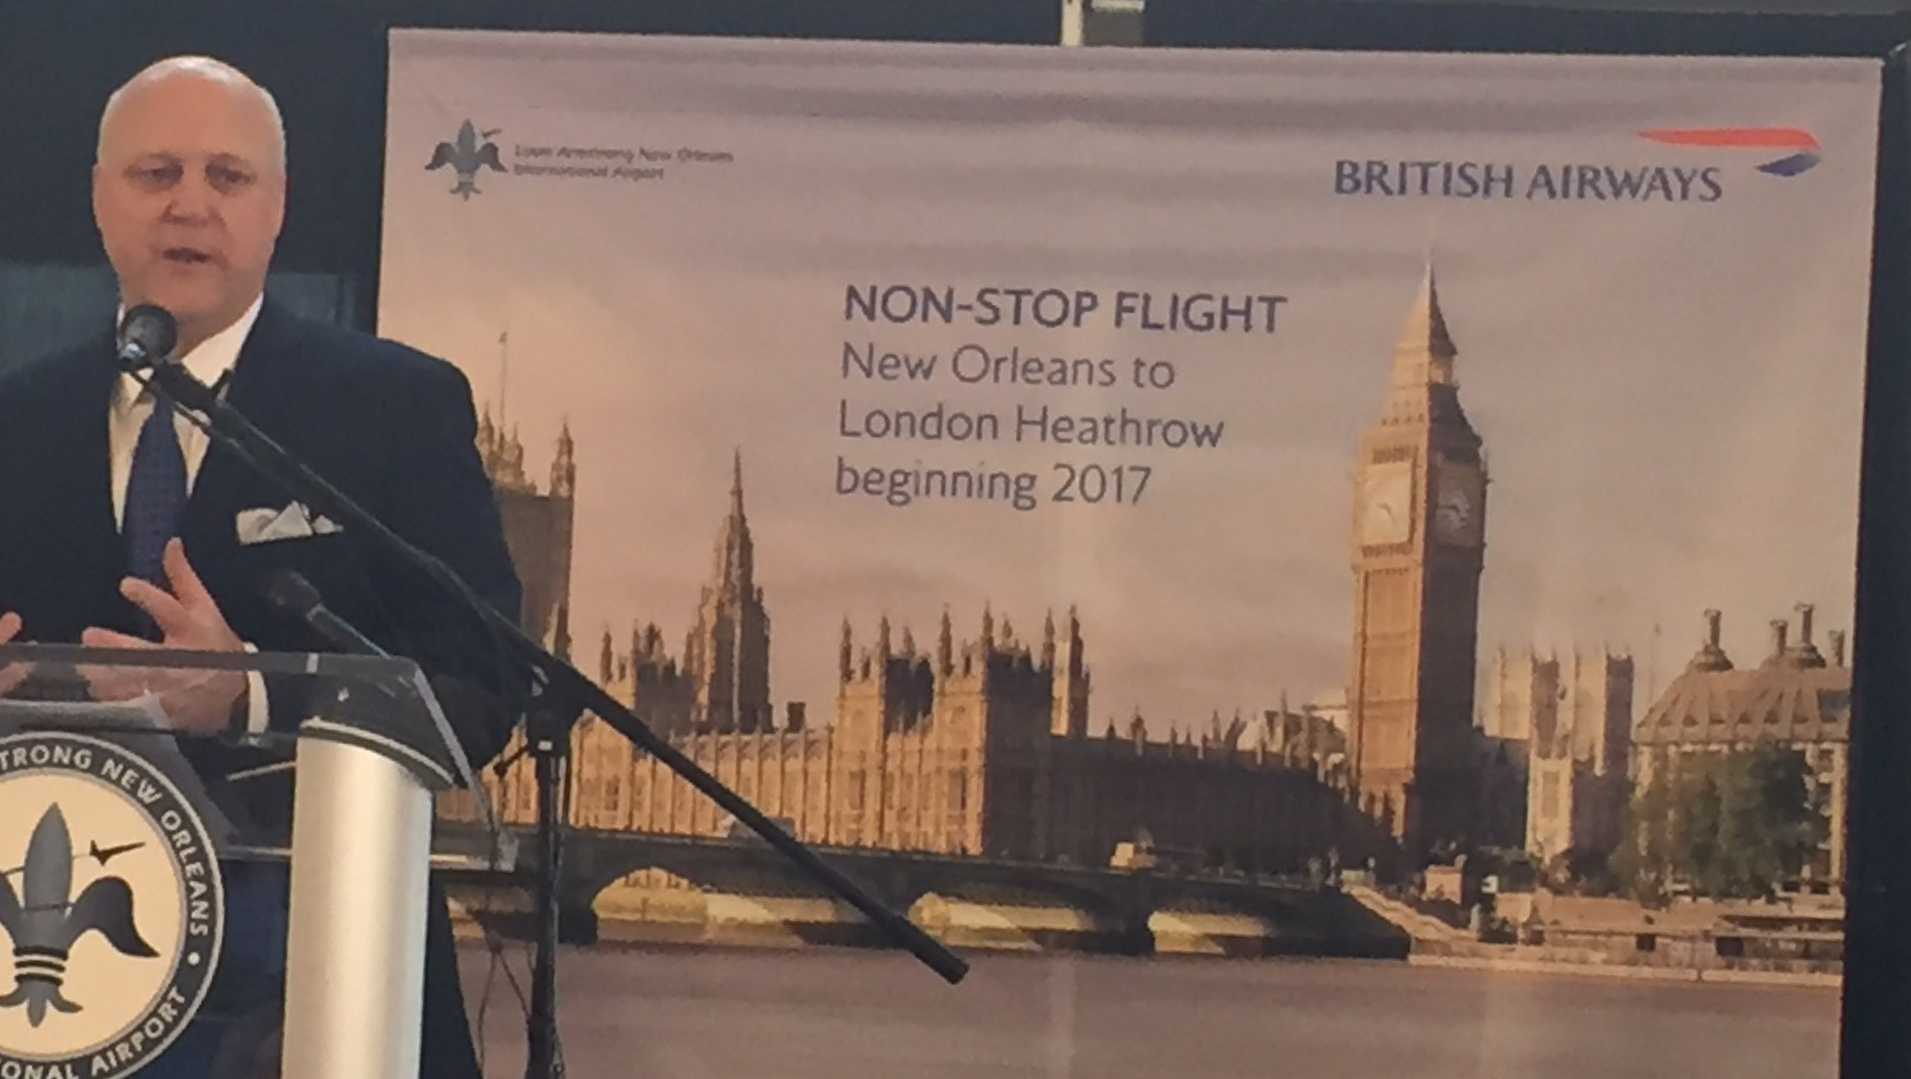 Non-stop flights to London announced